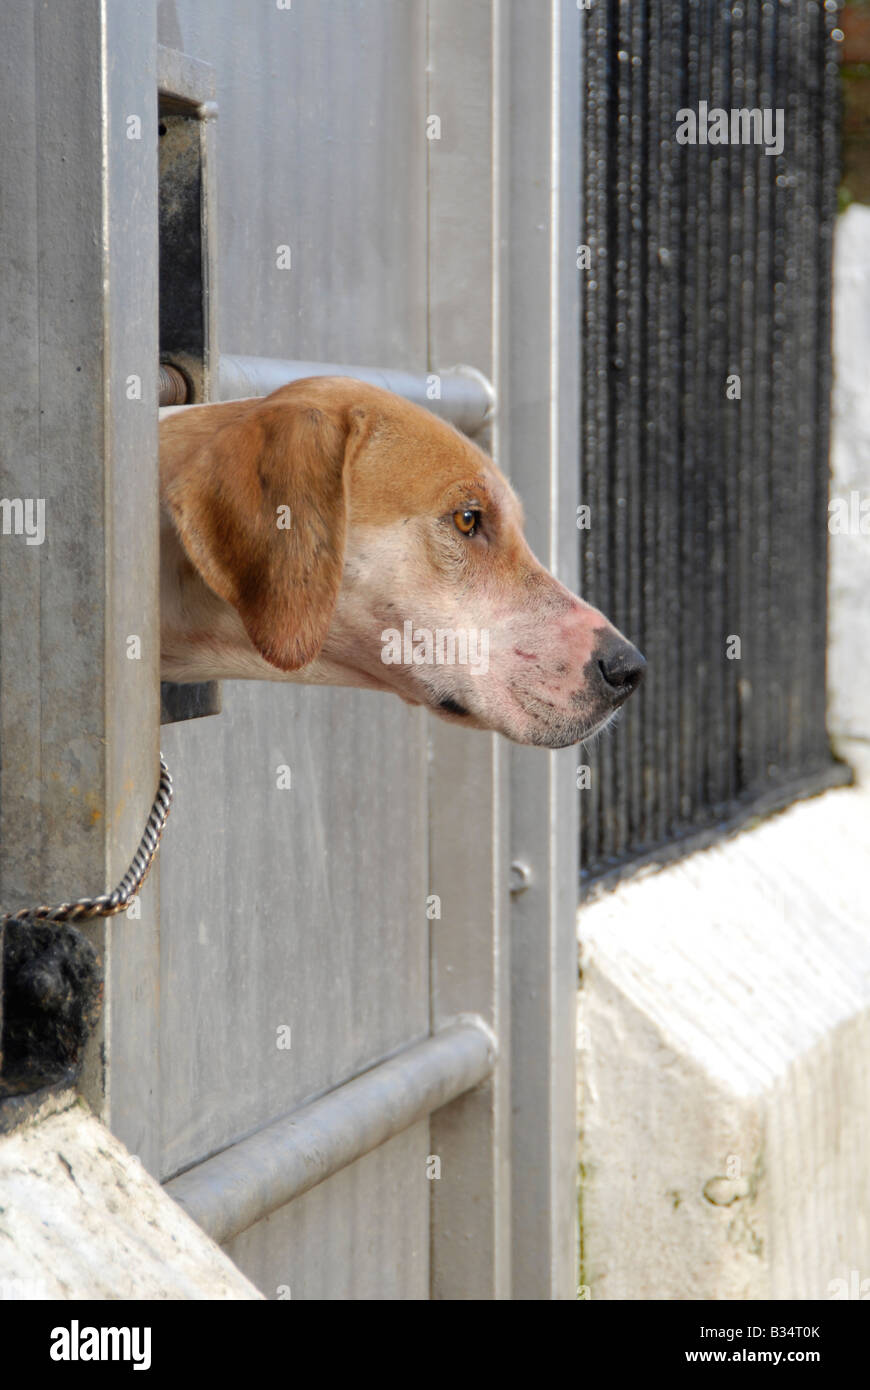 English foxhound looking through kennel bars - Stock Image